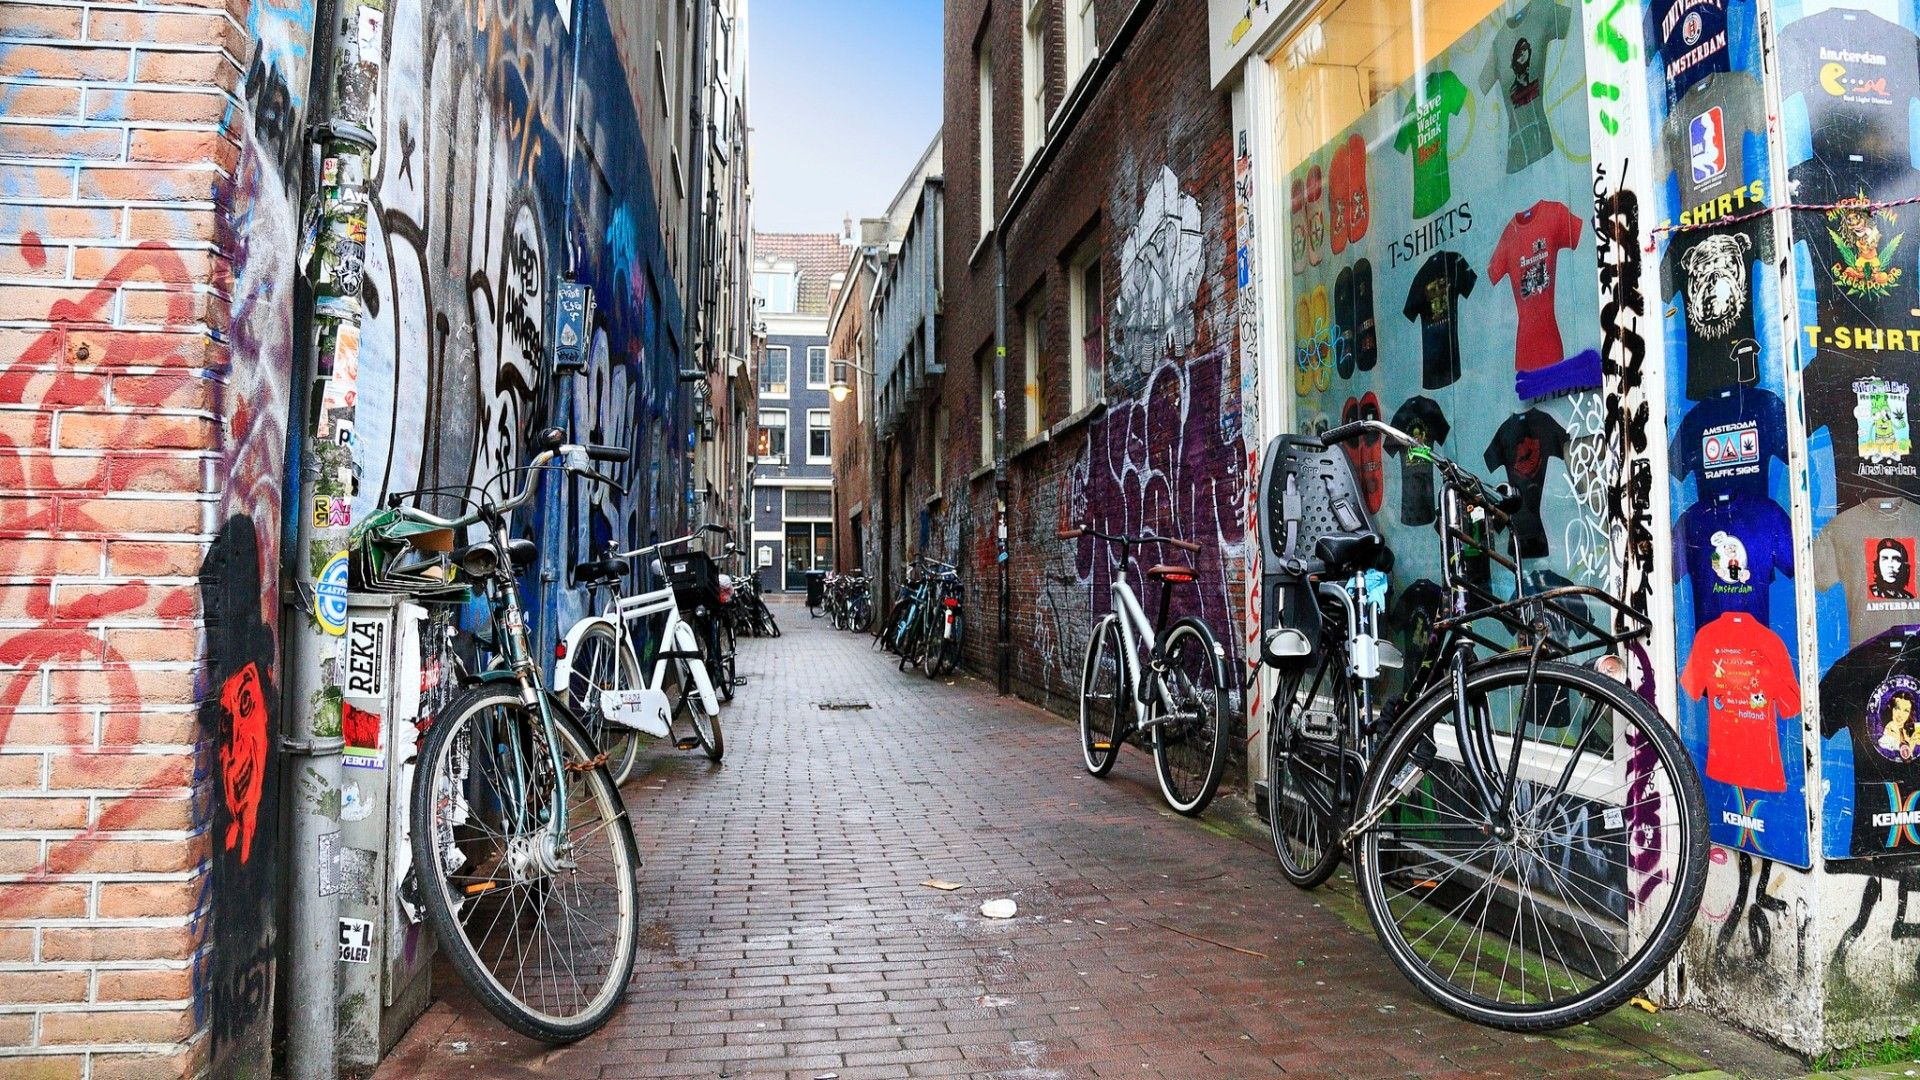 1920x1080 Other: Bicycles Graffiti Painted Alleyway Amsterdam City Wall Bikes ...